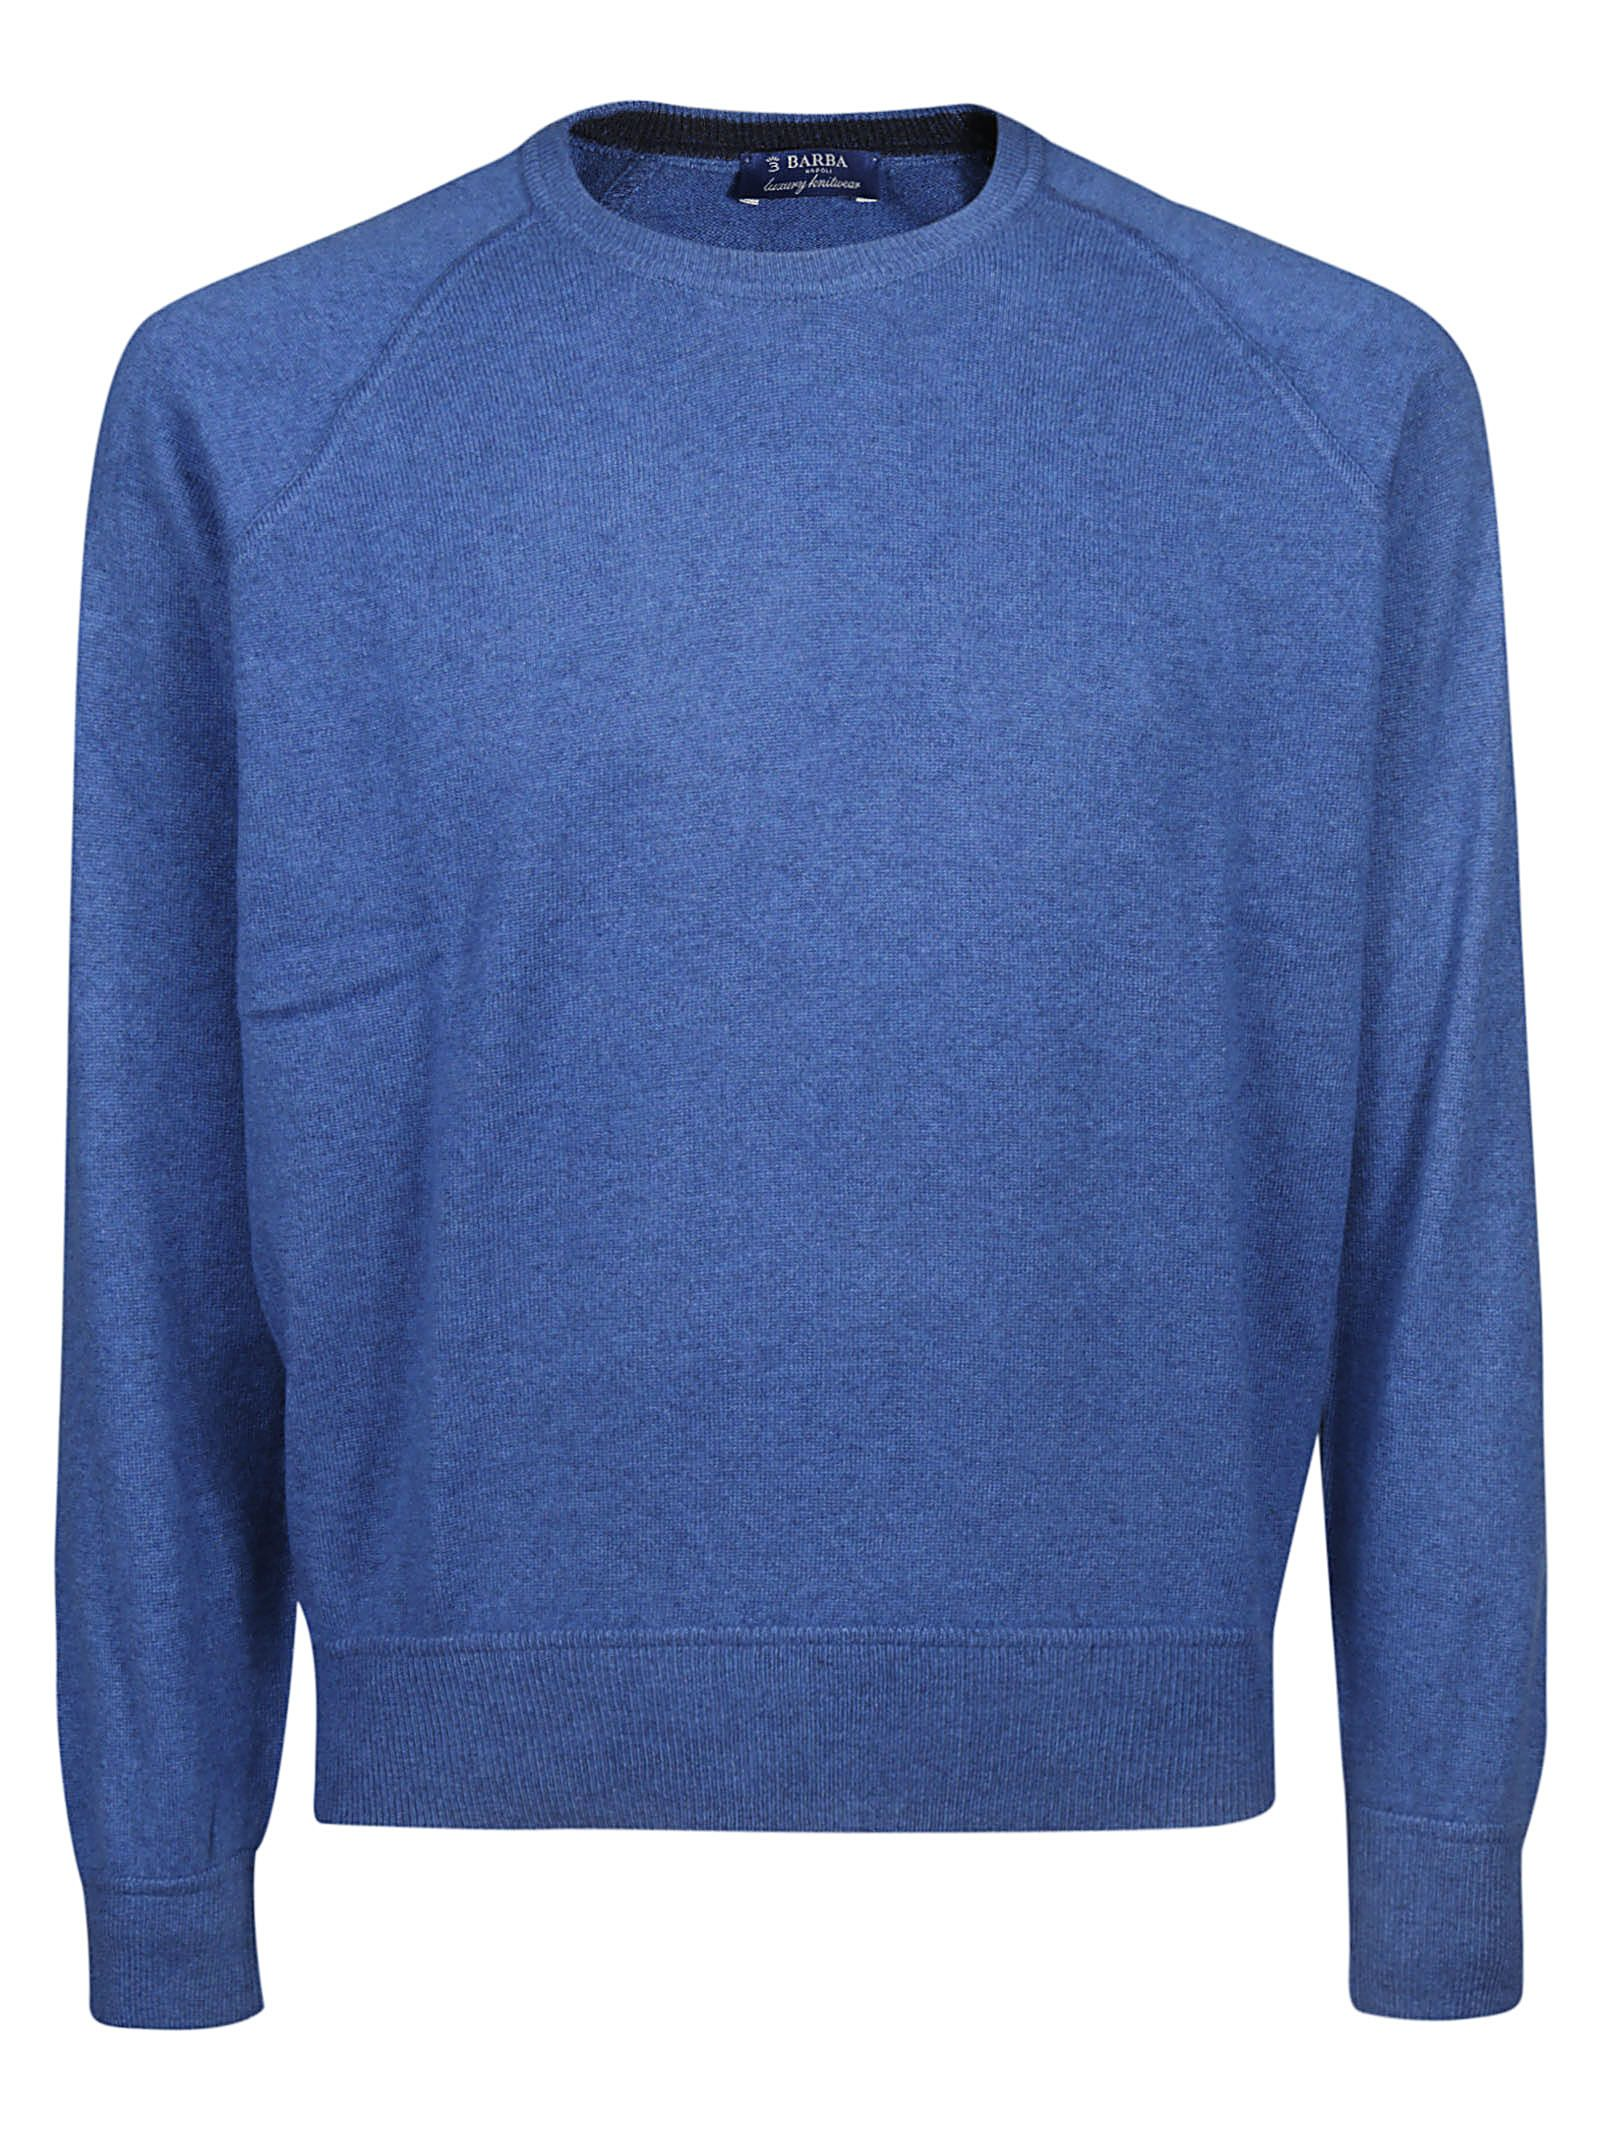 Barba Knitted Sweater